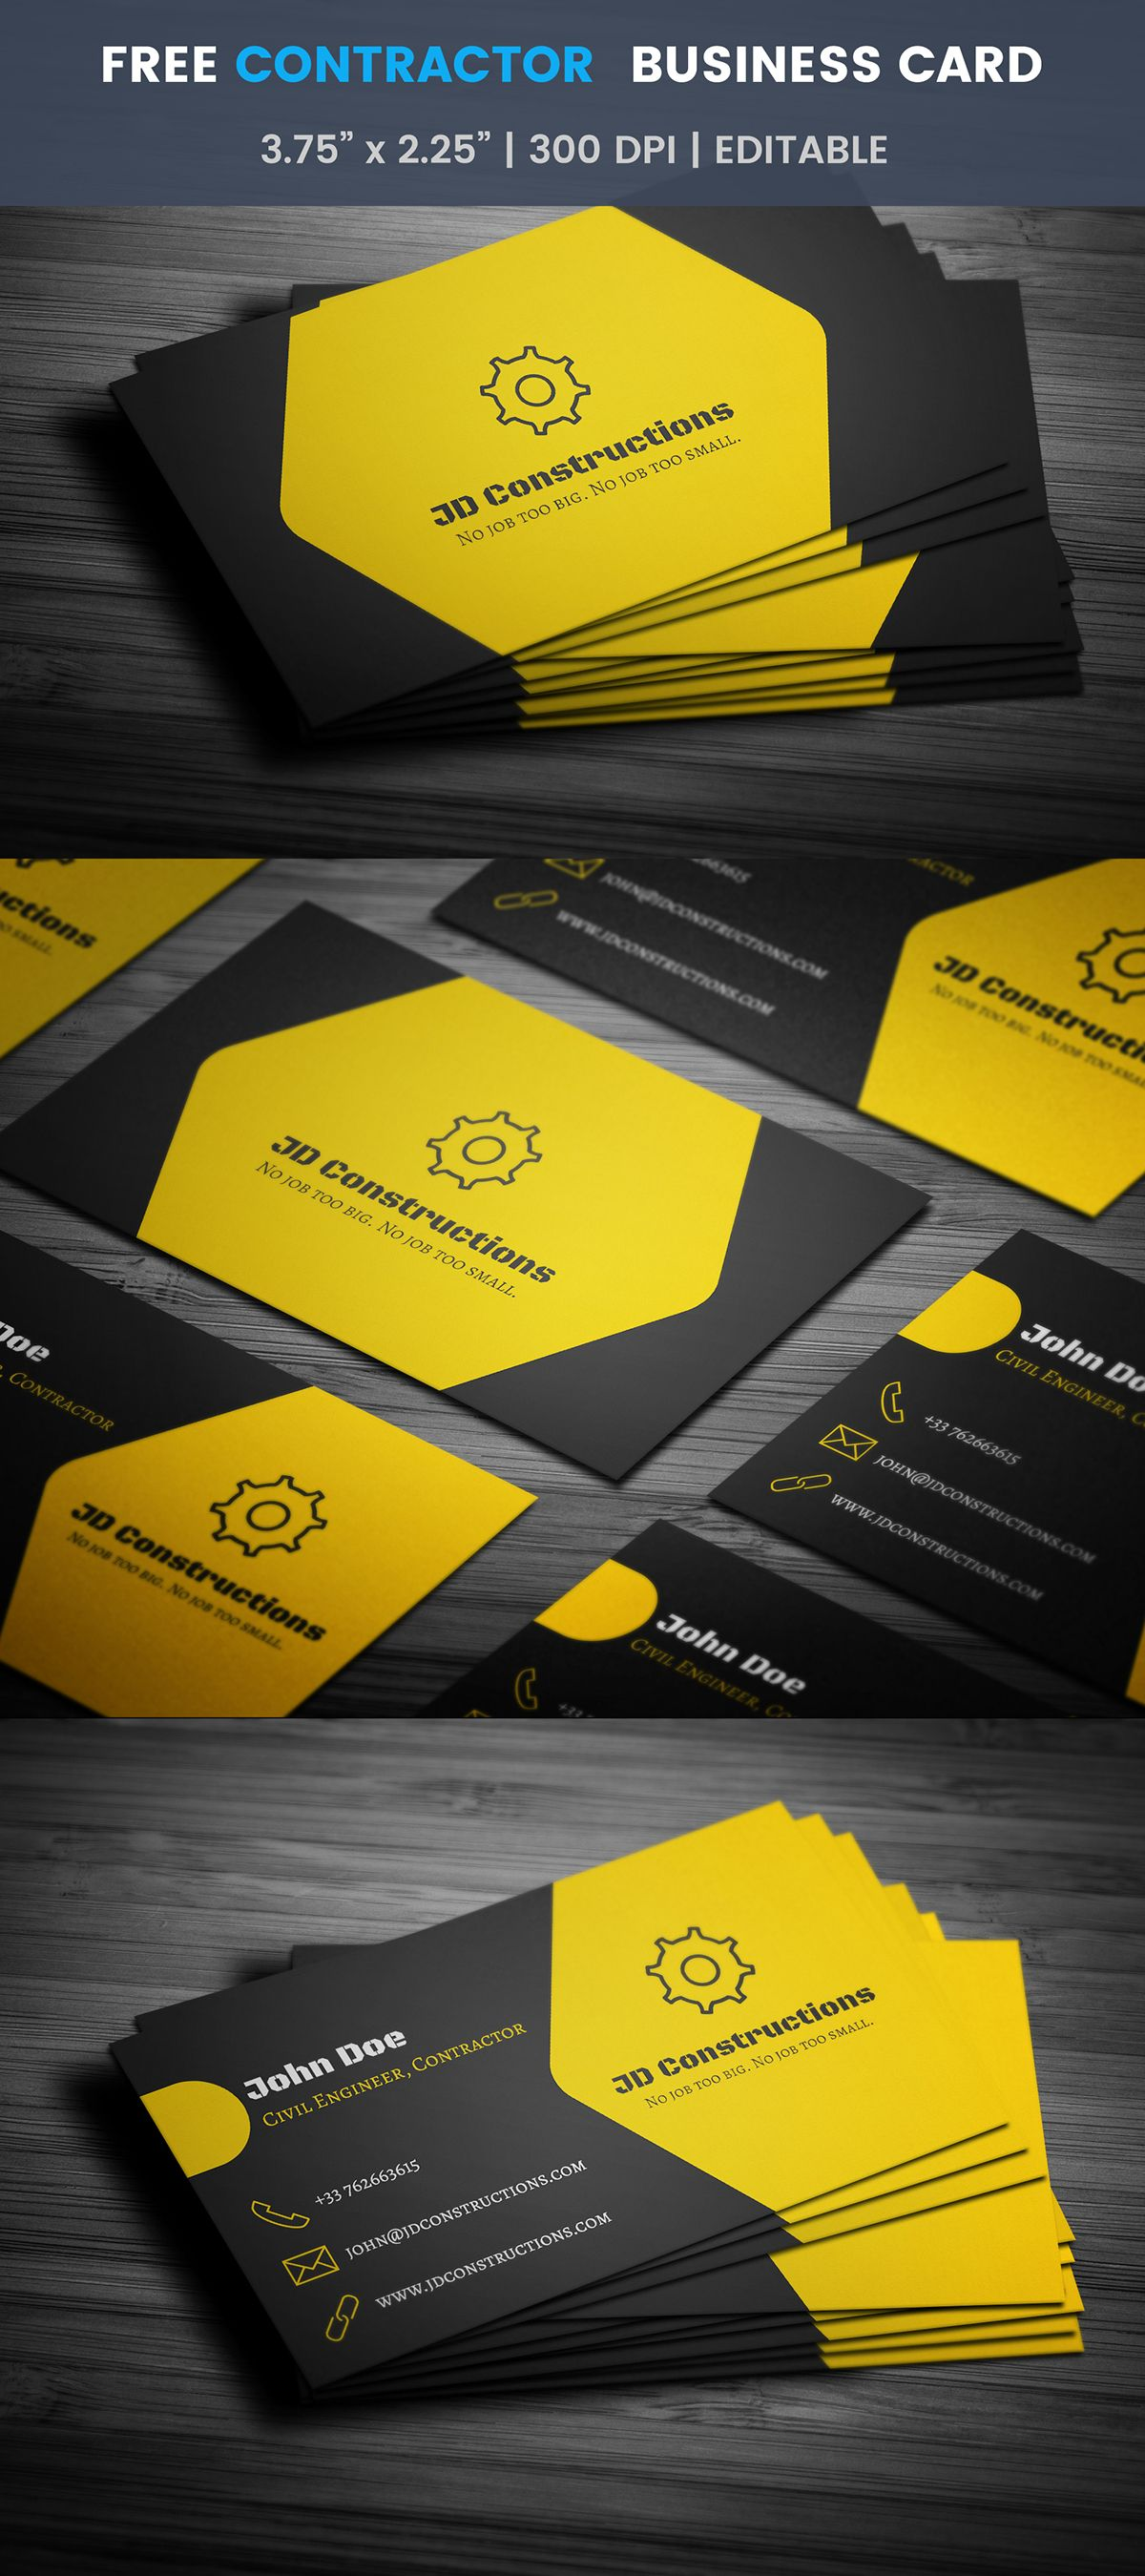 Free Construction Business Card Template On Student Show Regarding Construction B Company Business Cards Examples Of Business Cards Construction Business Cards